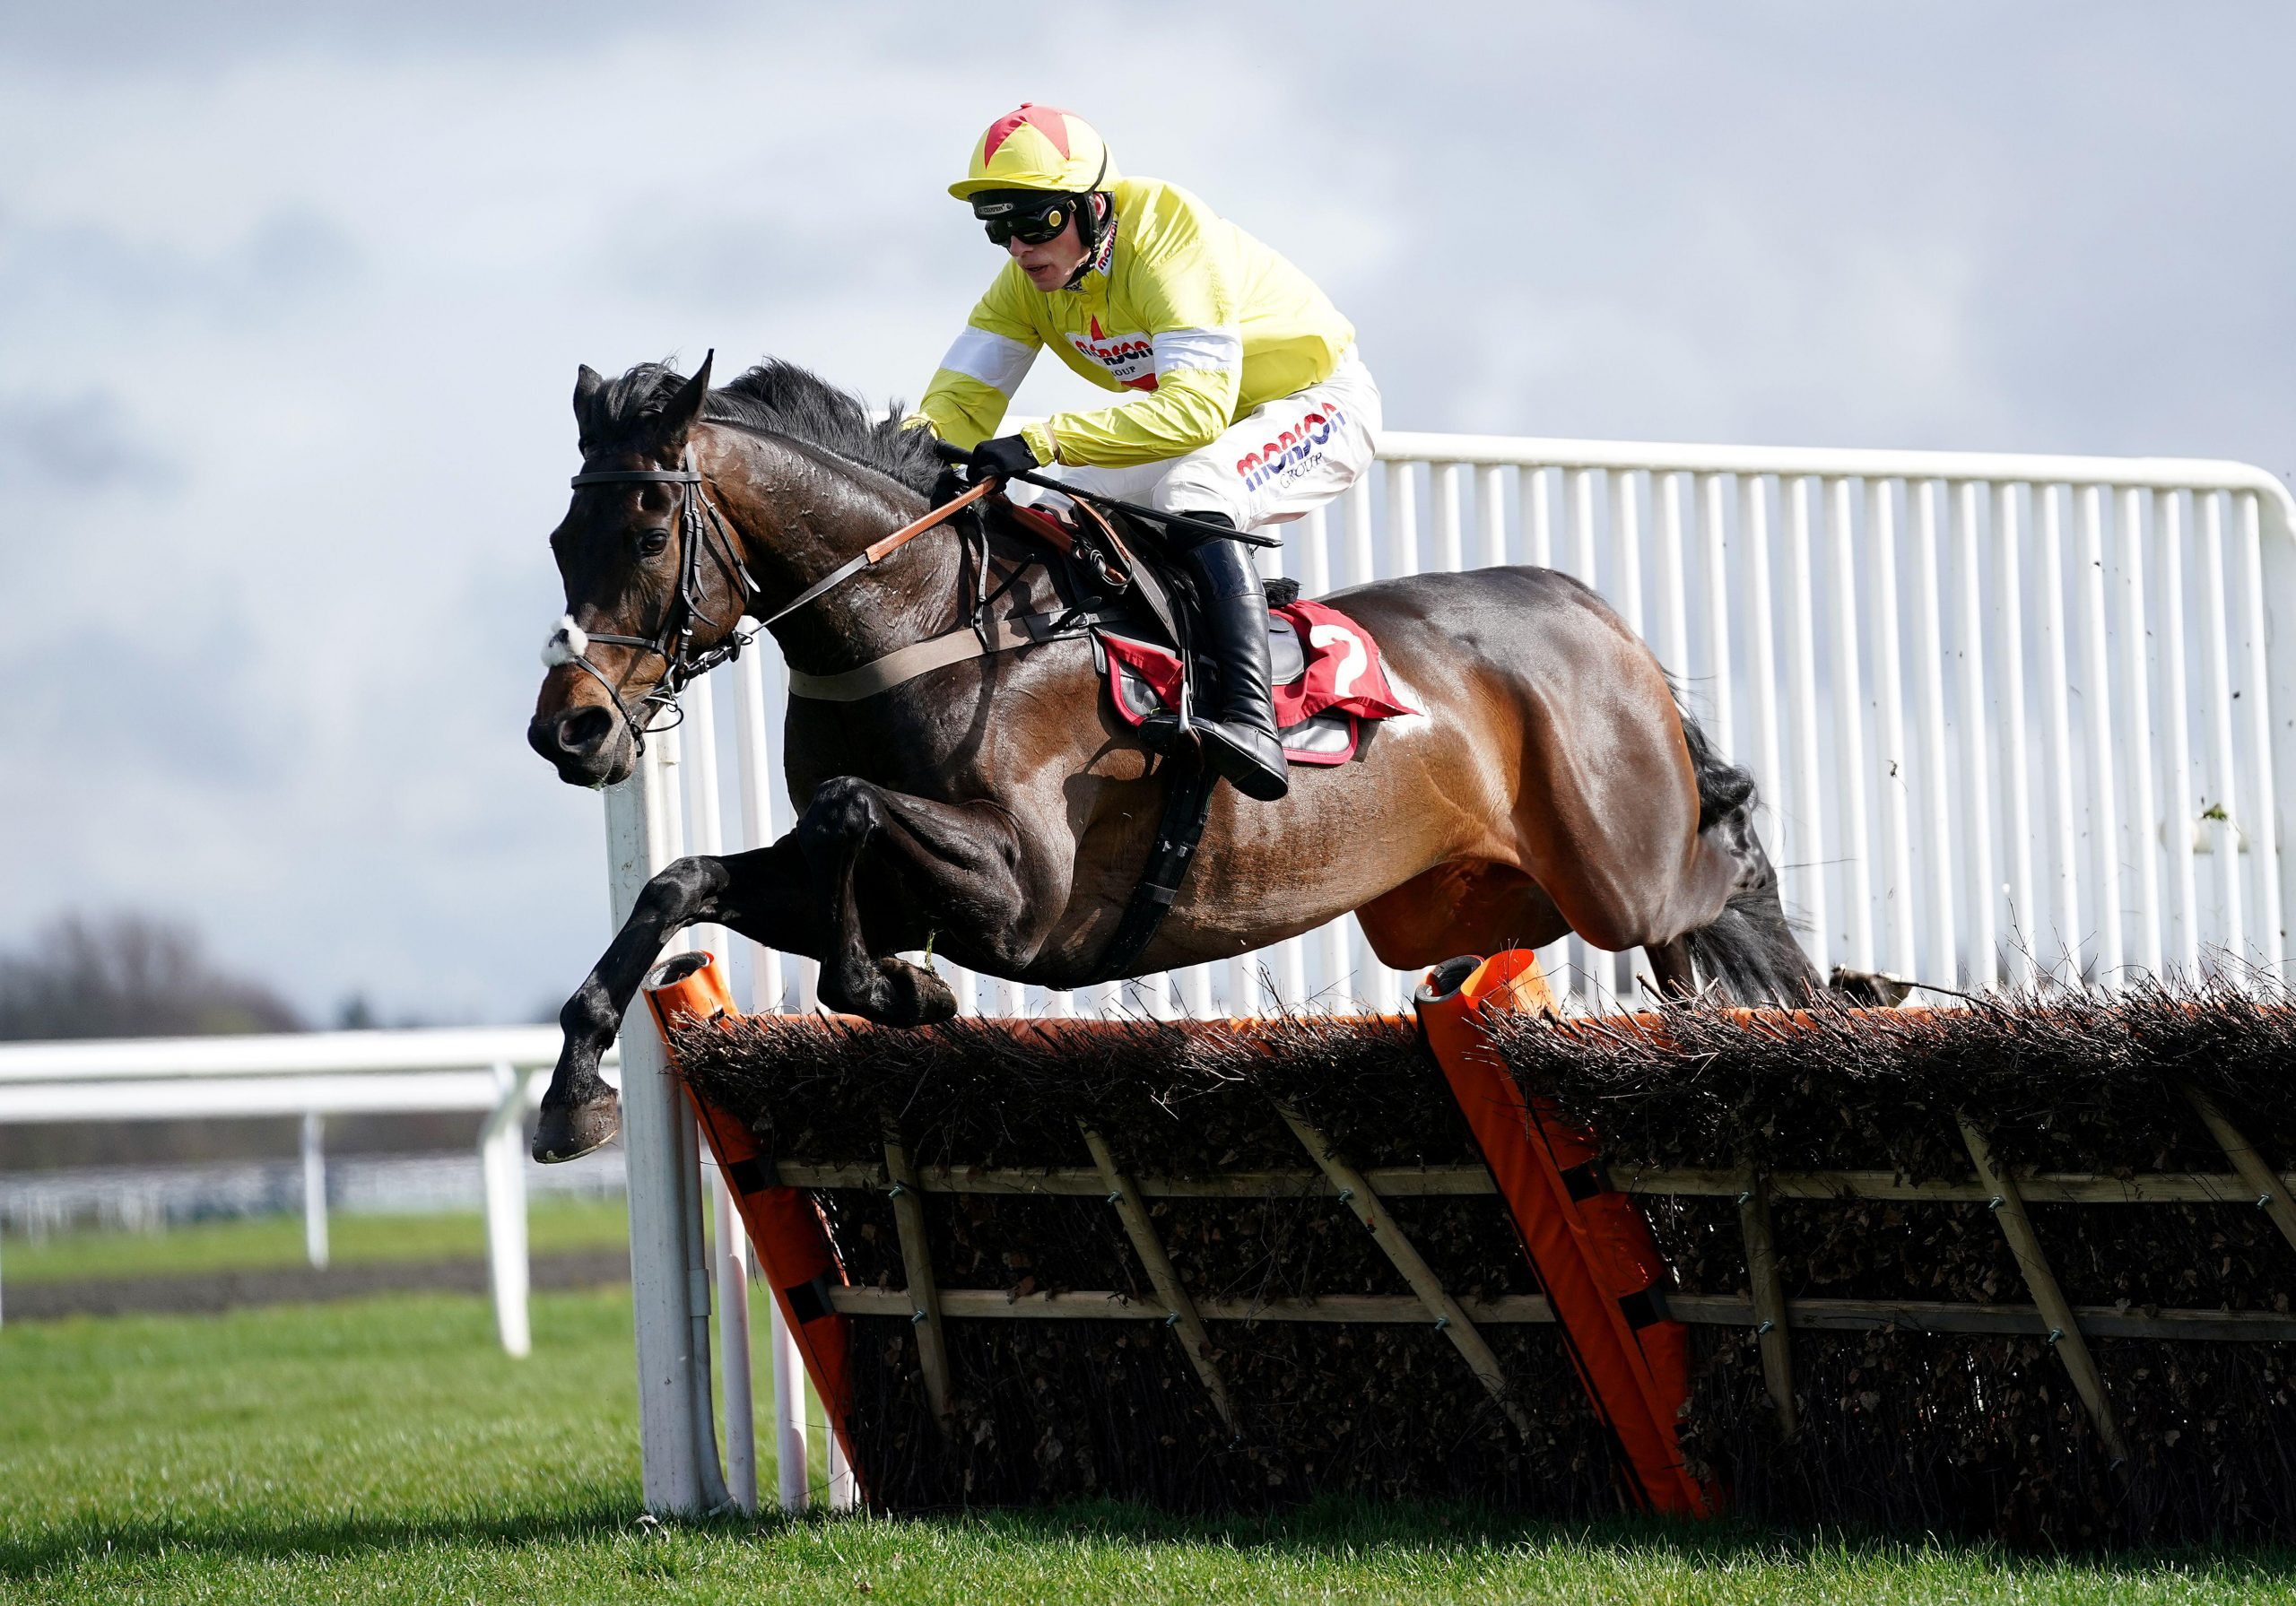 Fidelio Vallis ridden by Harry Cobden on the way to winning the Paddy Power From The Horse's Mouth Podcast Novices' Hurdle at Kempton Park Racecourse, London.